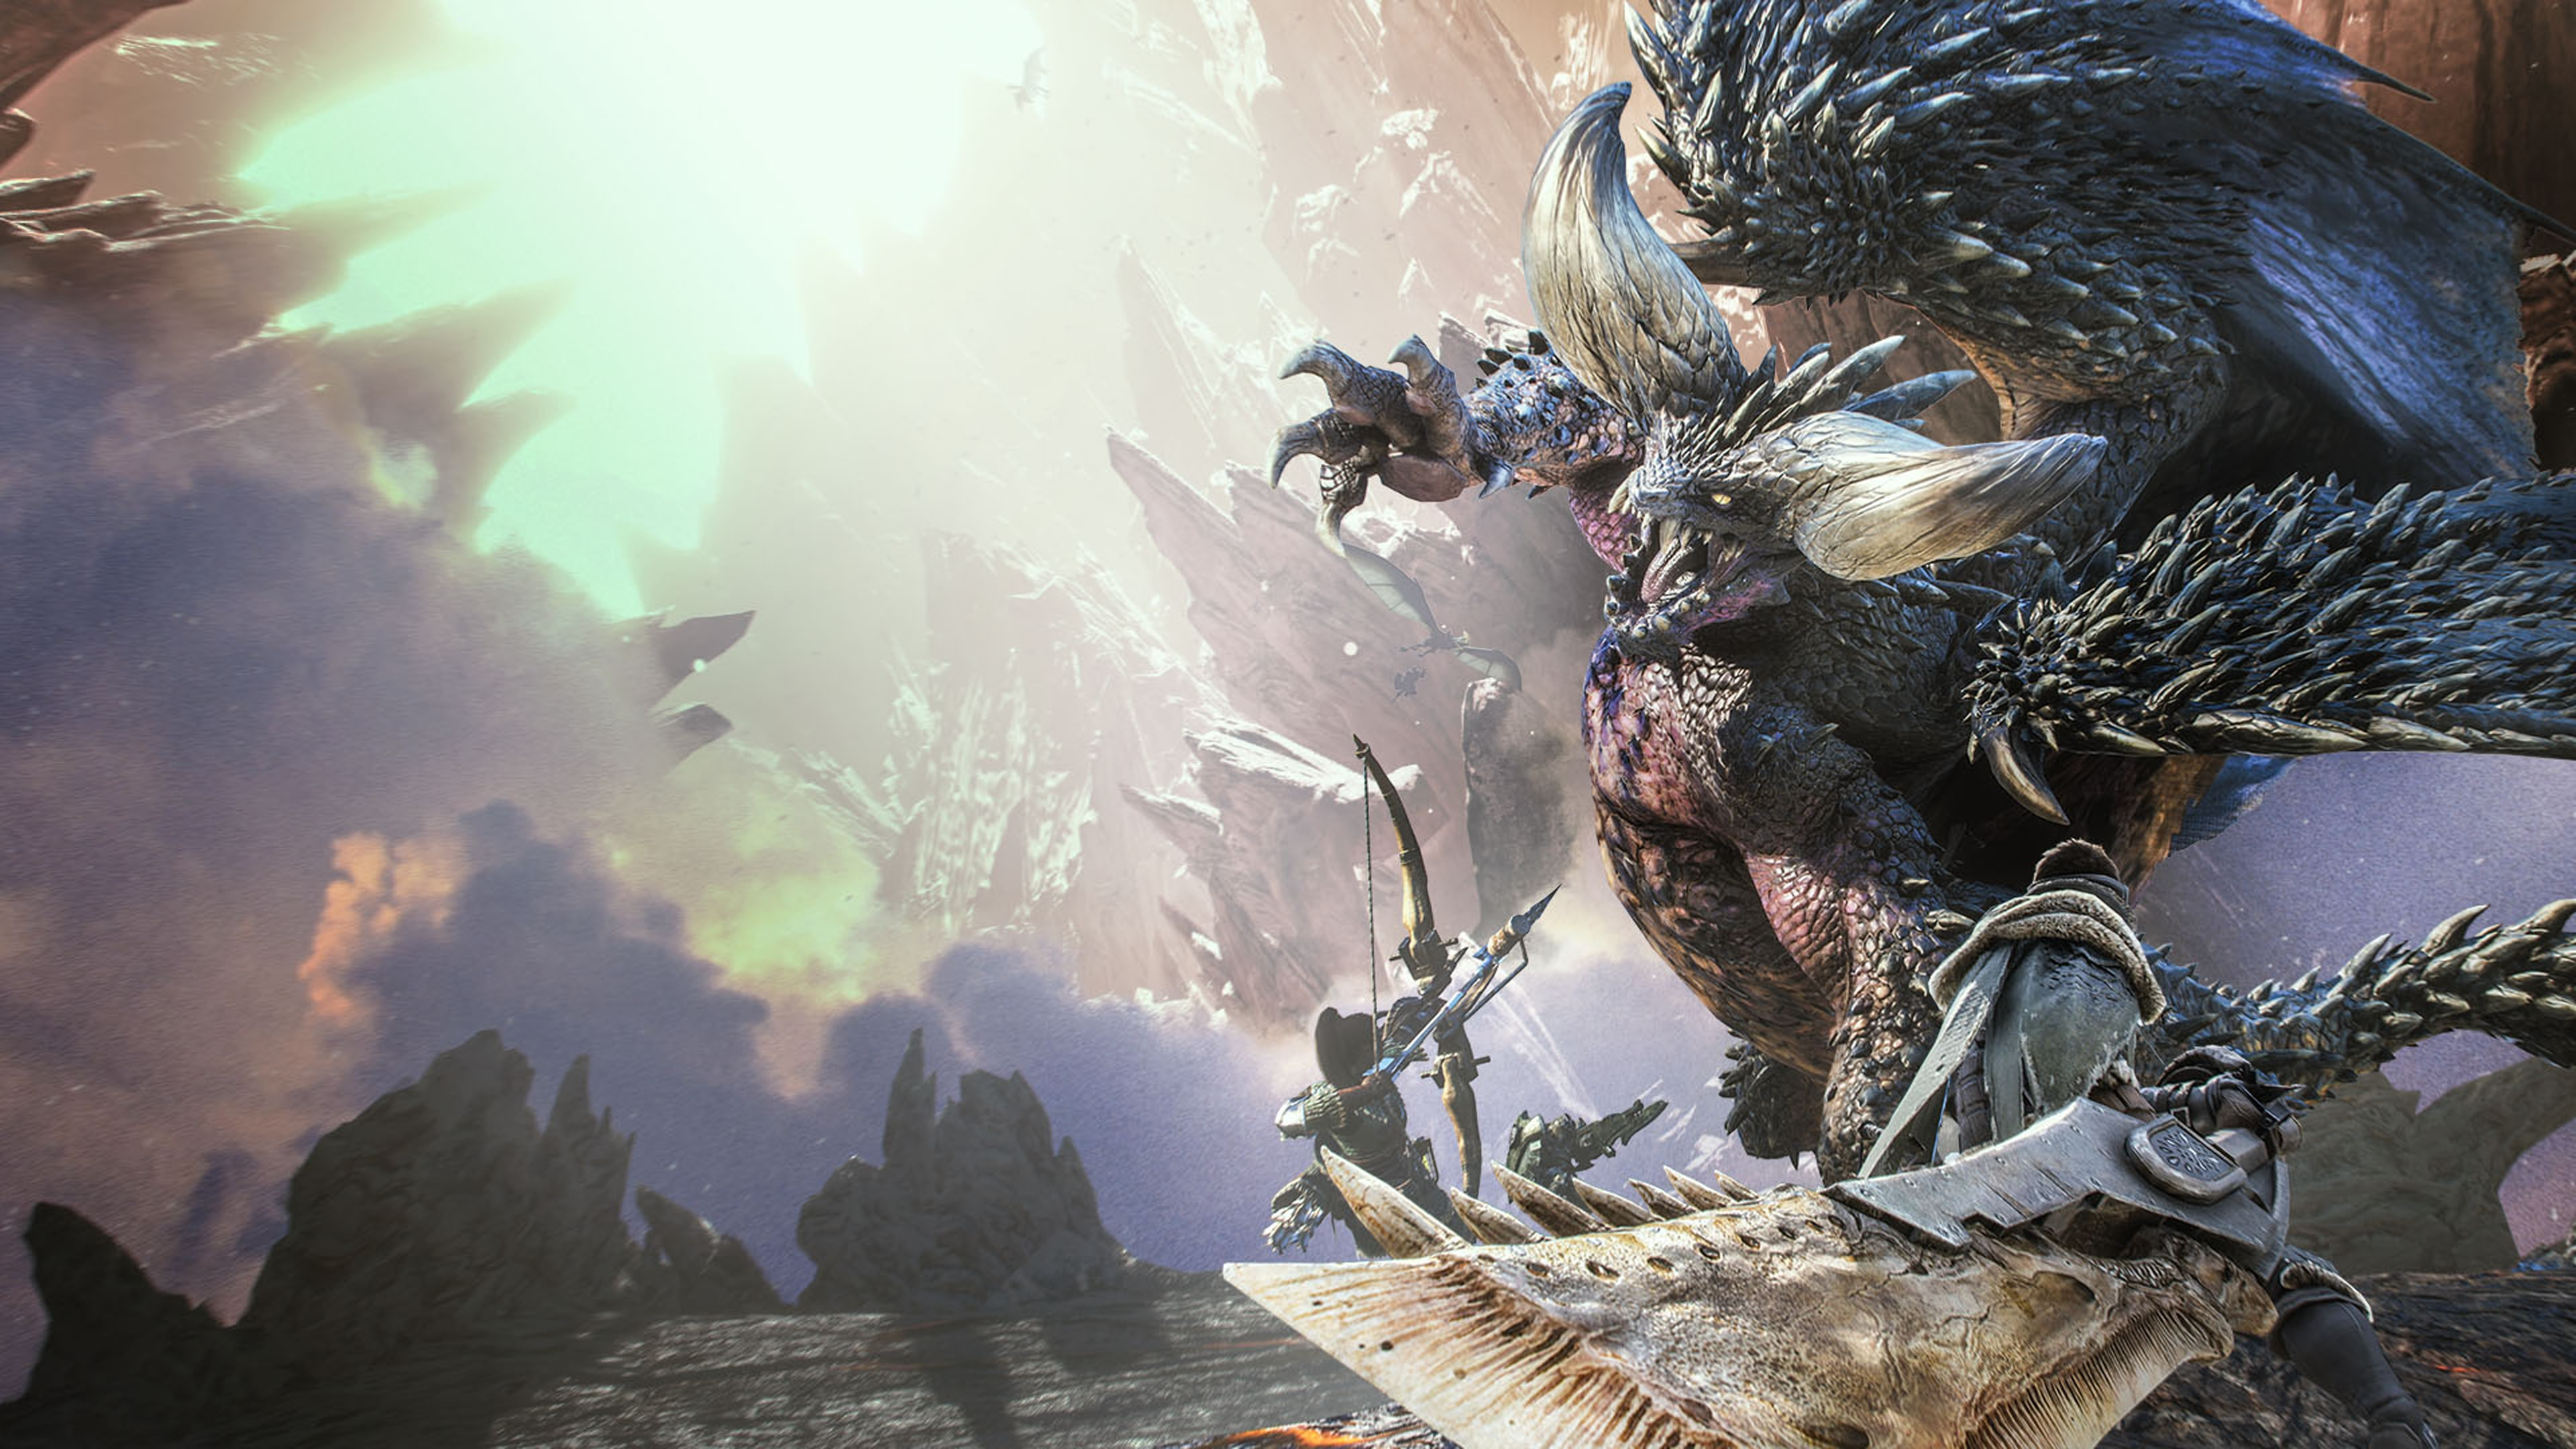 MONSTER HUNTER: WORLD™ (Simplified Chinese, English, Korean, Japanese, Traditional Chinese)